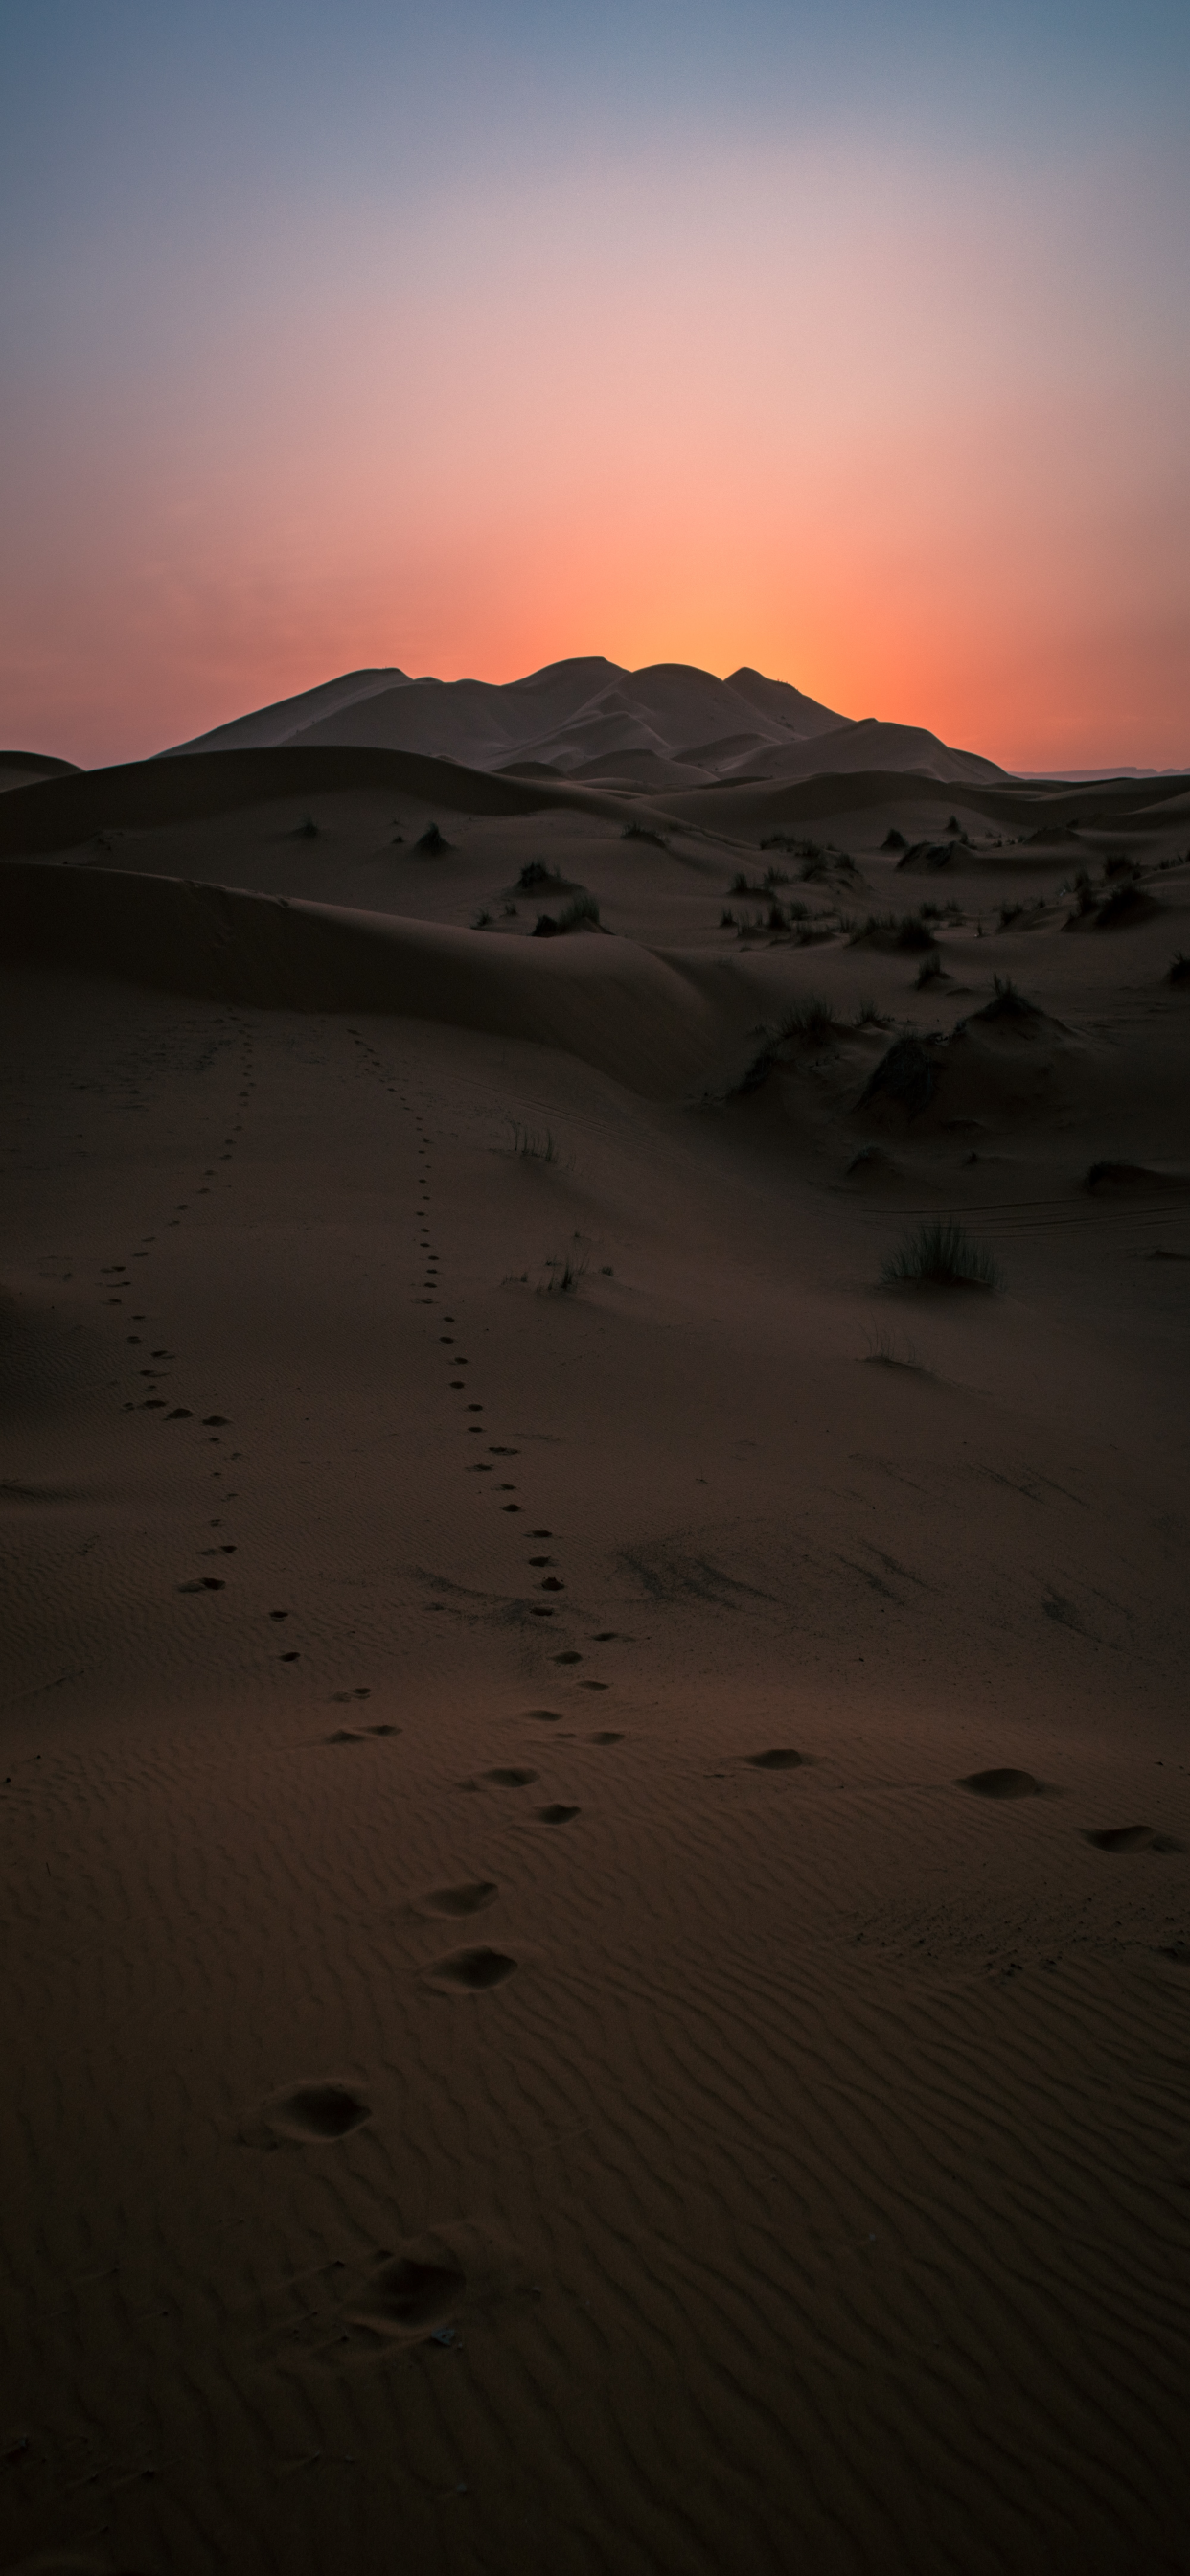 iPhone wallpaper morocco desert sunset Fonds d'écran iPhone du 09/08/2019